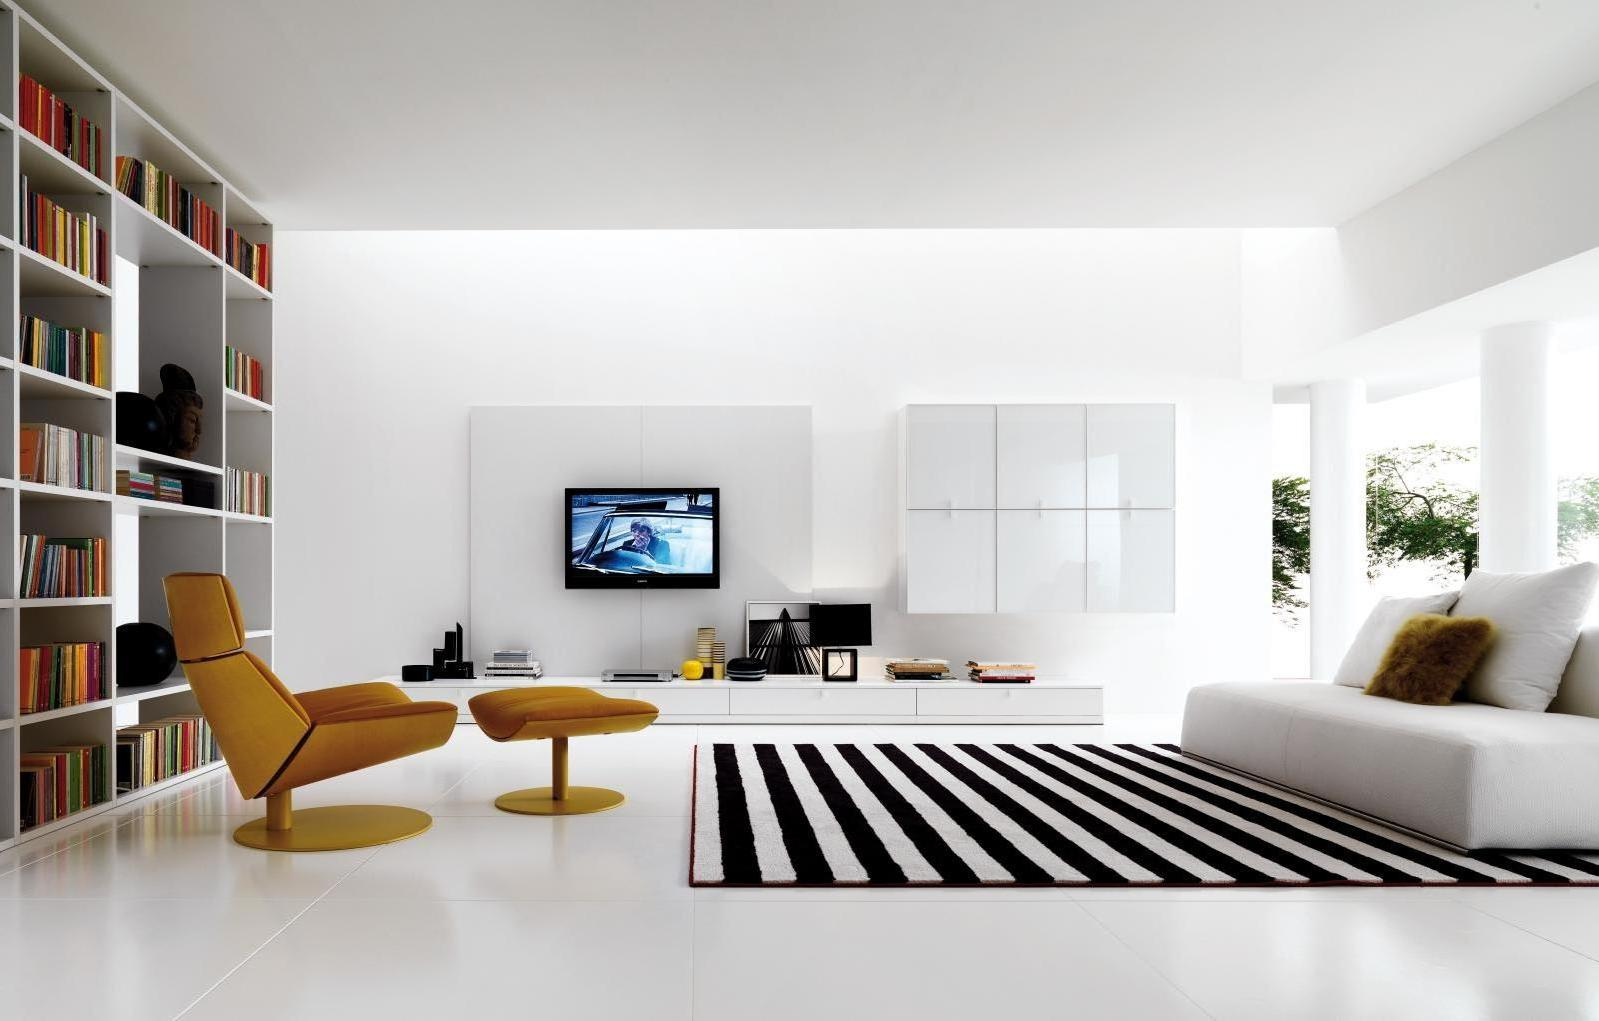 Gorgeous living room furniture in modern style with striped rug on floor beside brown lounge chair as well bookcase in the nearby